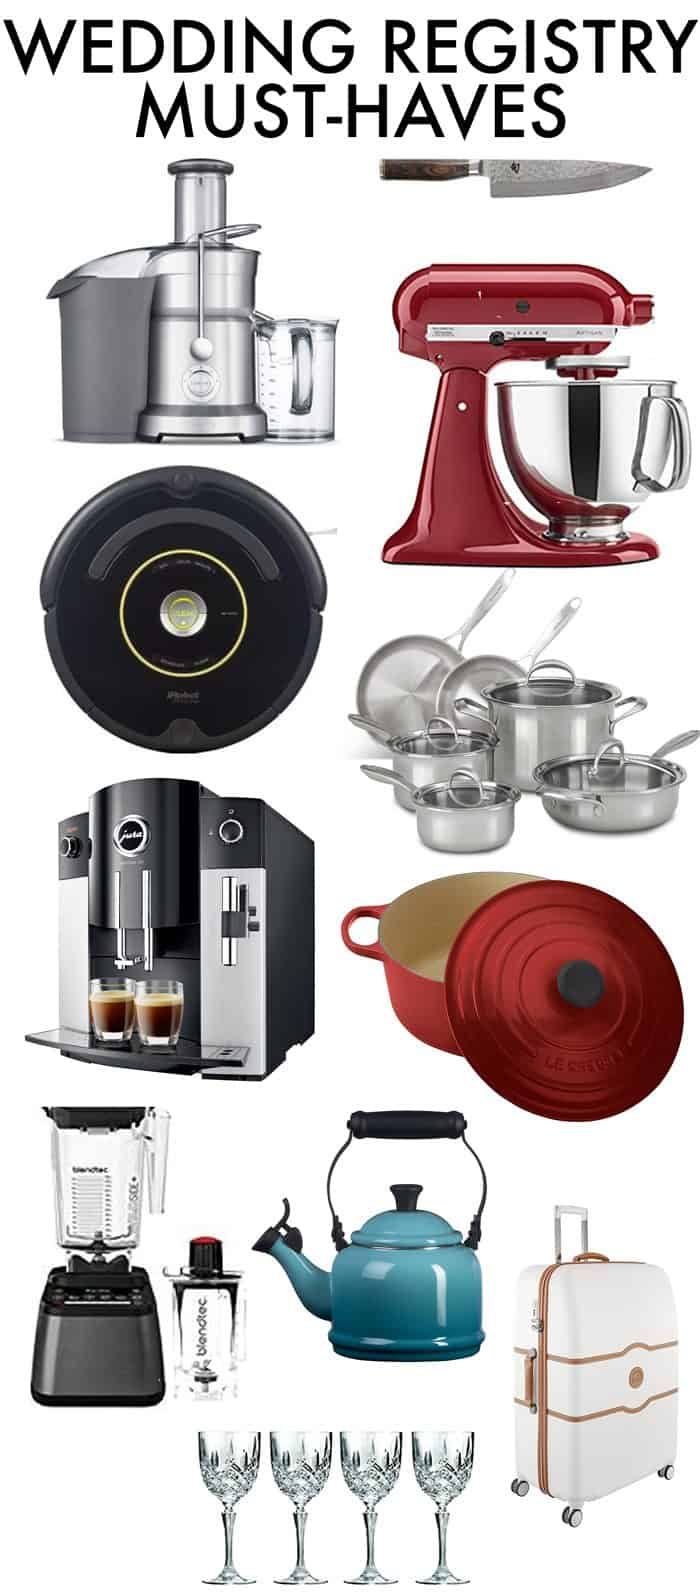 Wedding Registry Must-Haves